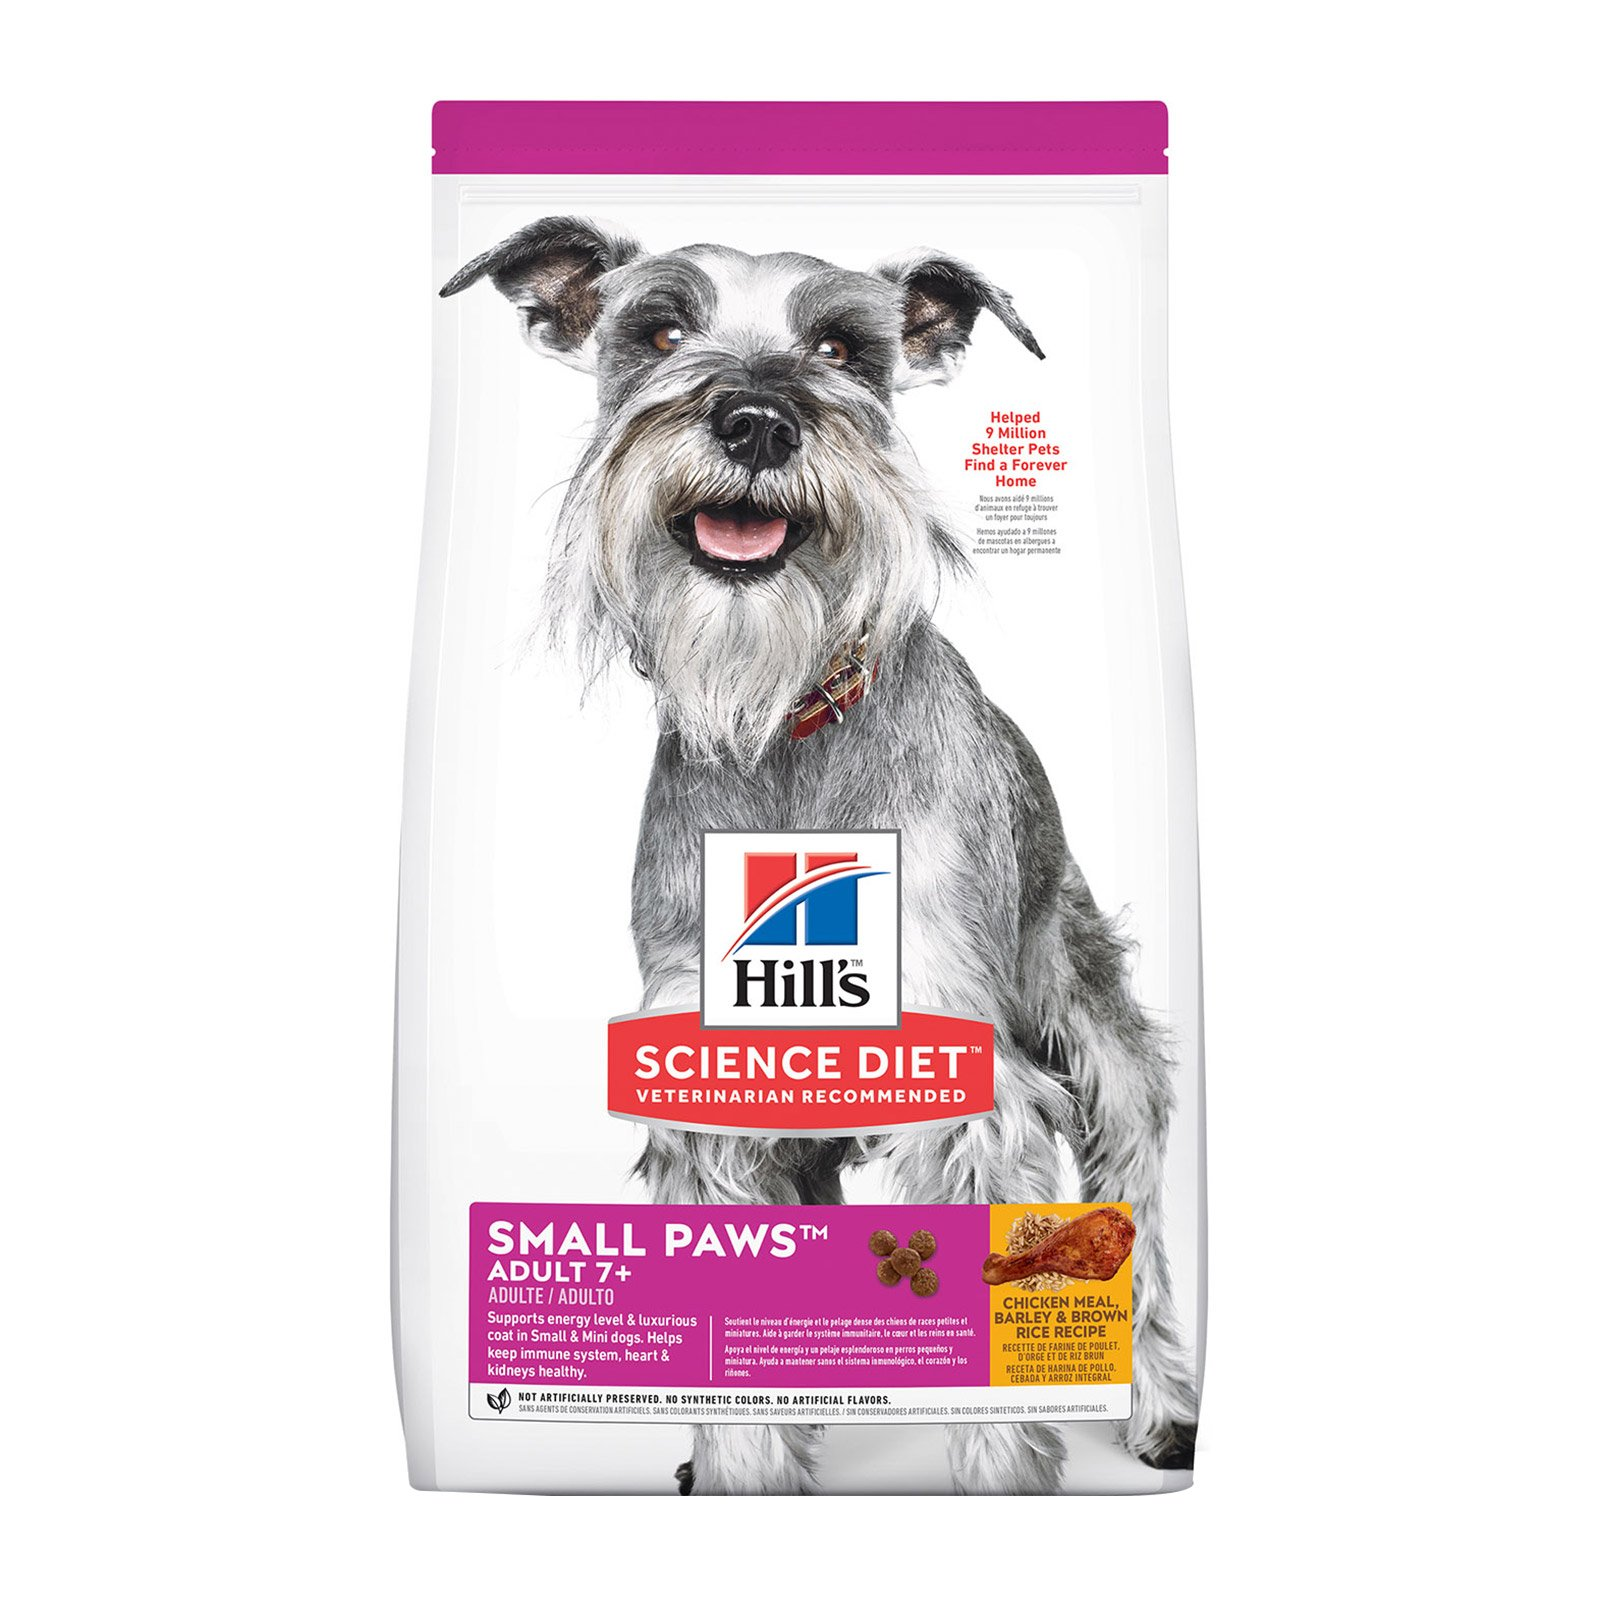 Hill's Science Diet Adult 7+ Small Paws Chicken, Barley & Rice Dry Dog Food